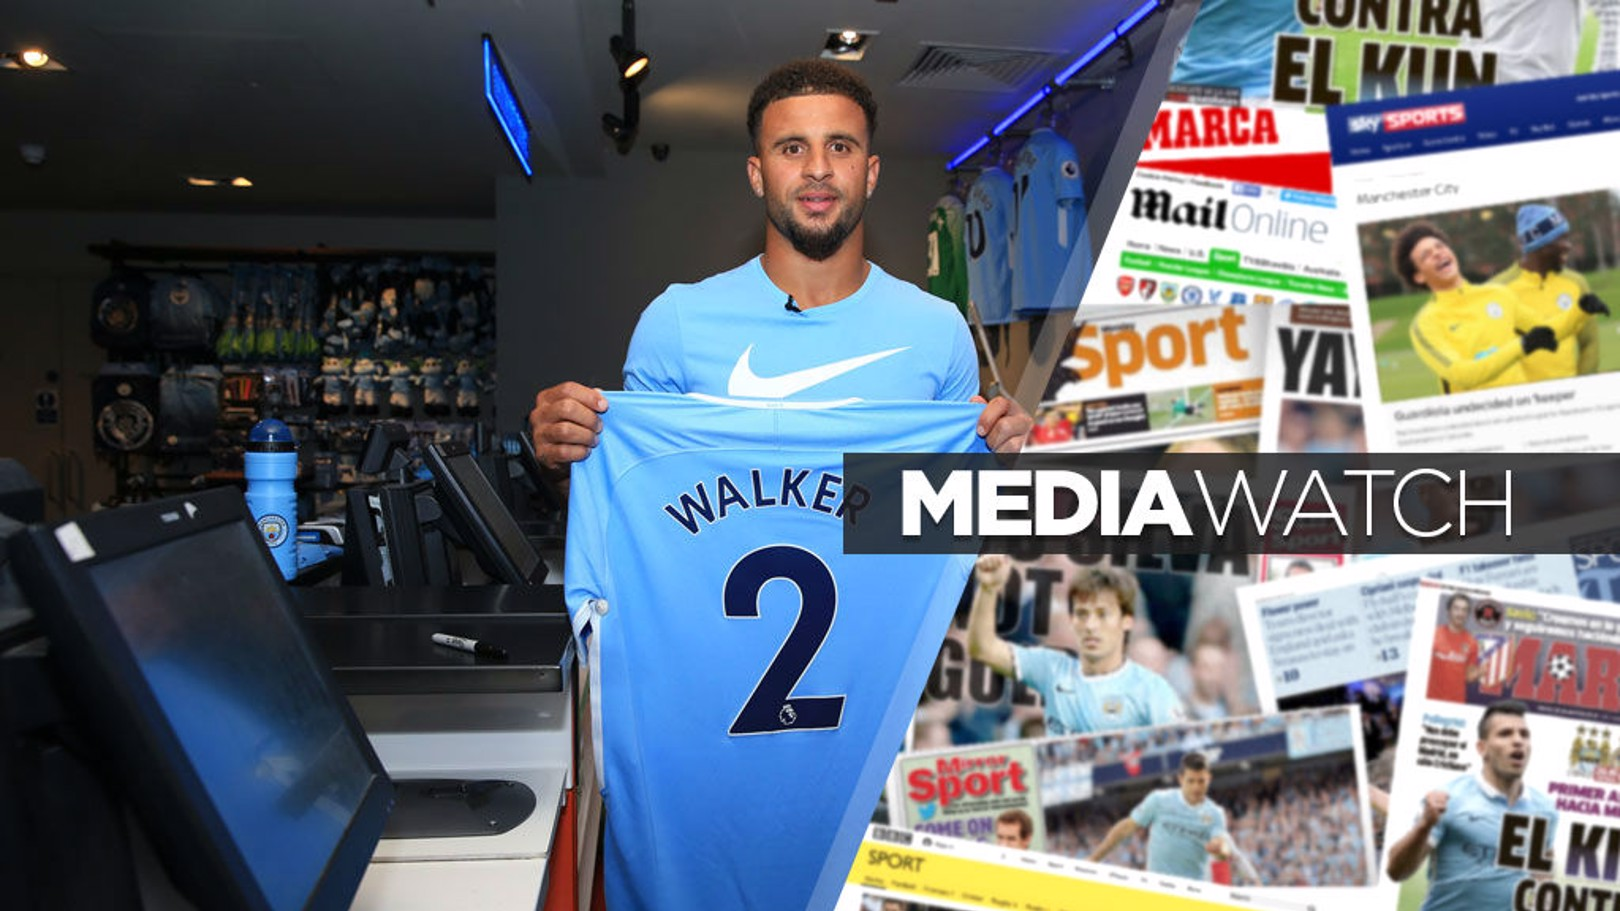 DONE DEAL: The press have reacted to the signing of Kyle Walker